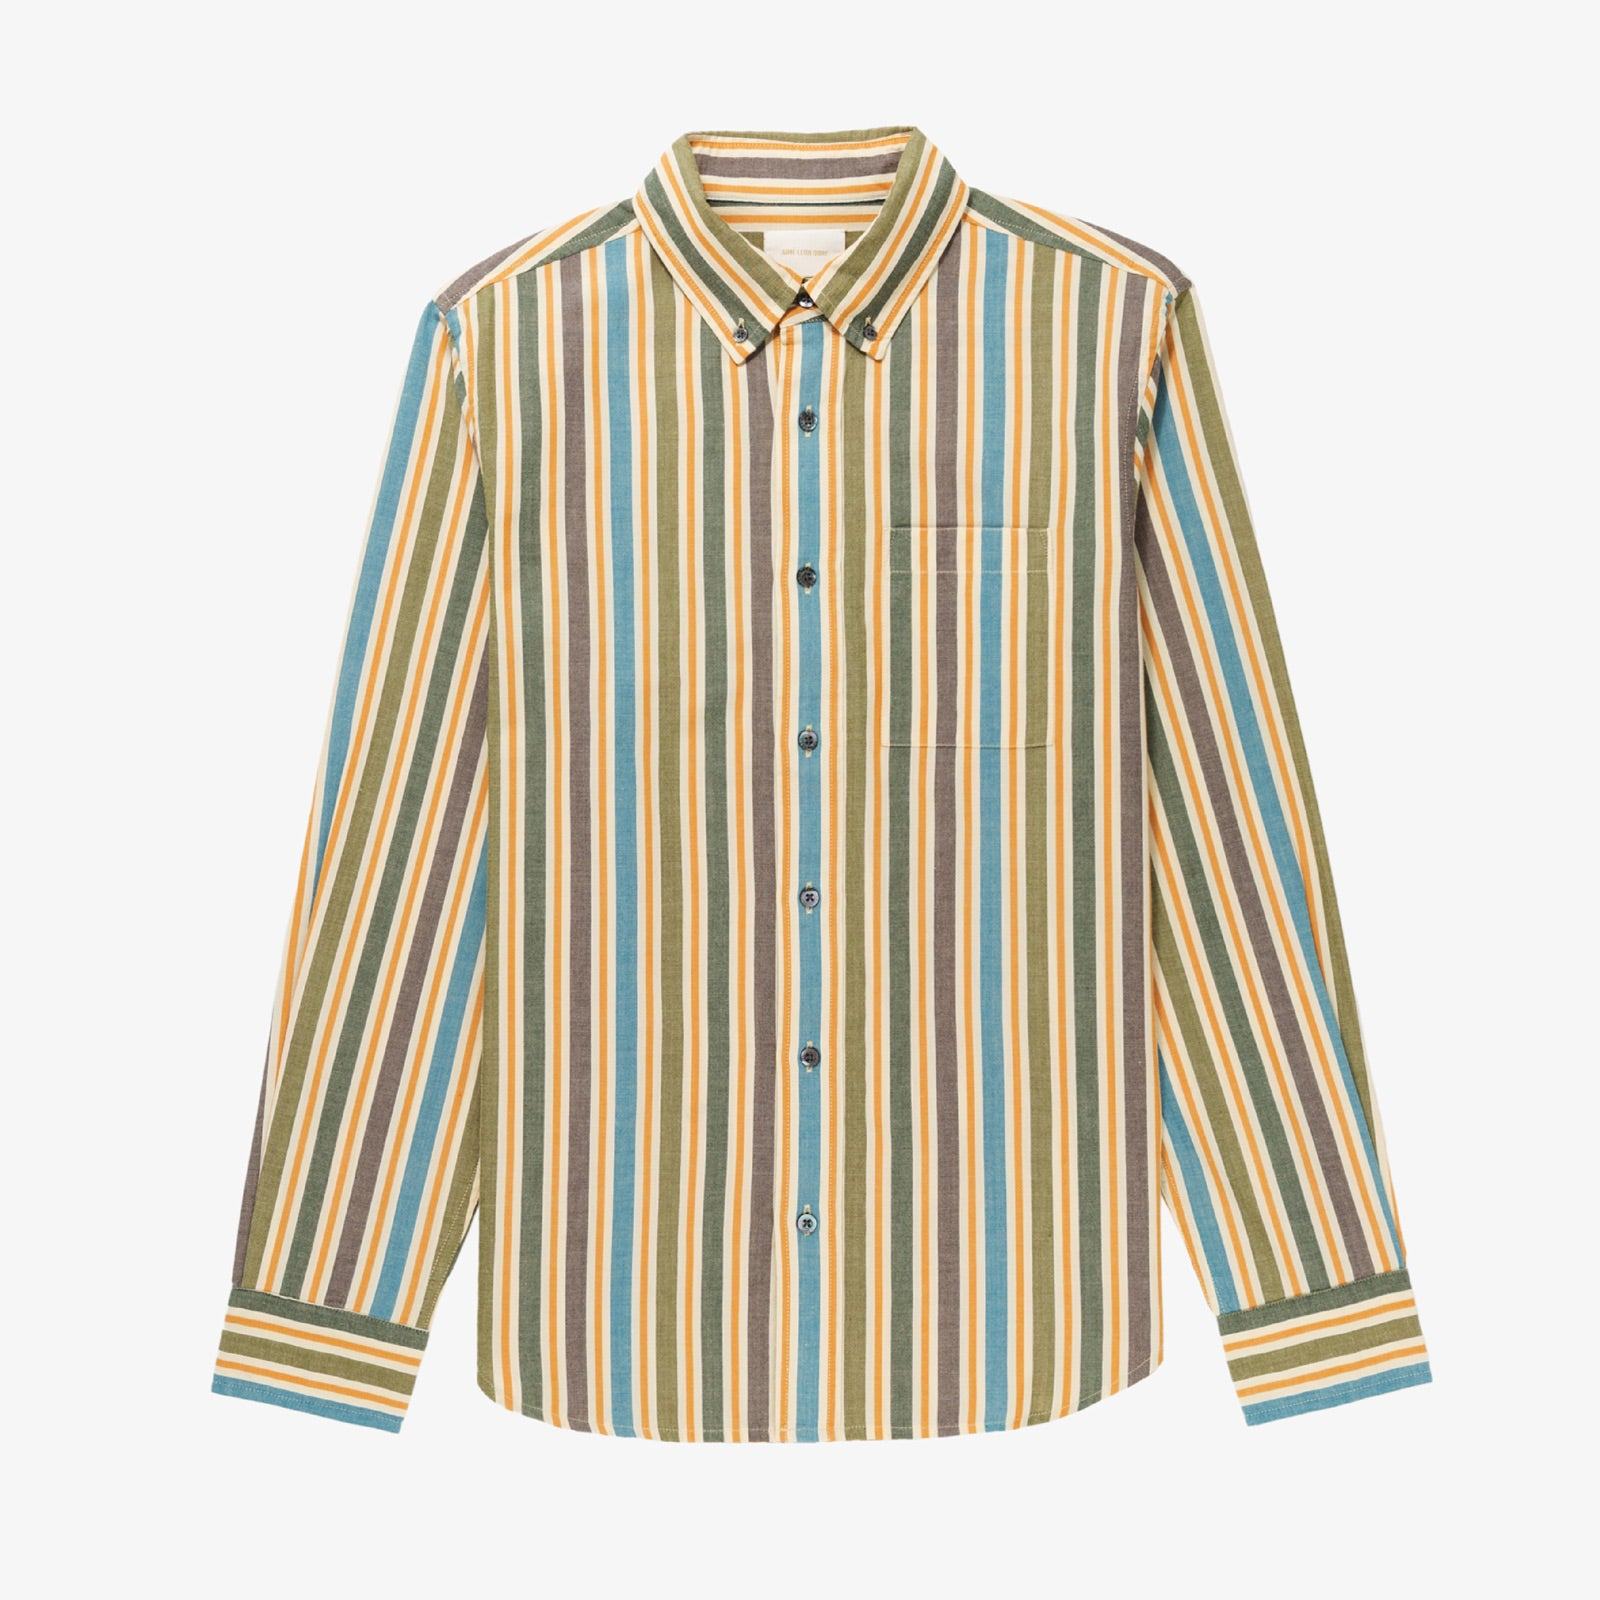 Vintage Striped Oxford